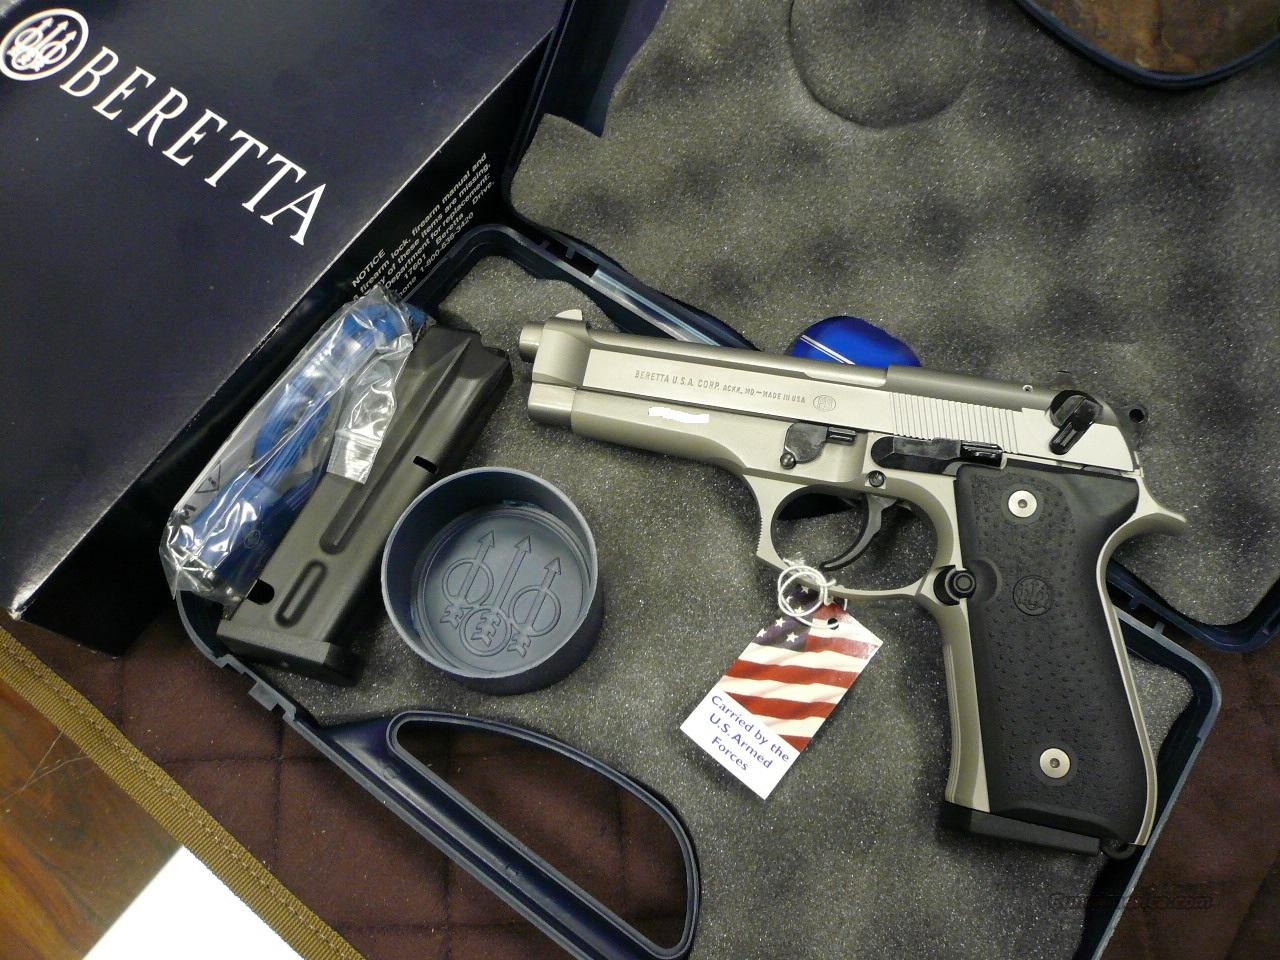 92FS/STAINLESS 9MM NIB (CA LEGAL)  Guns > Pistols > Beretta Pistols > Model 92 Series